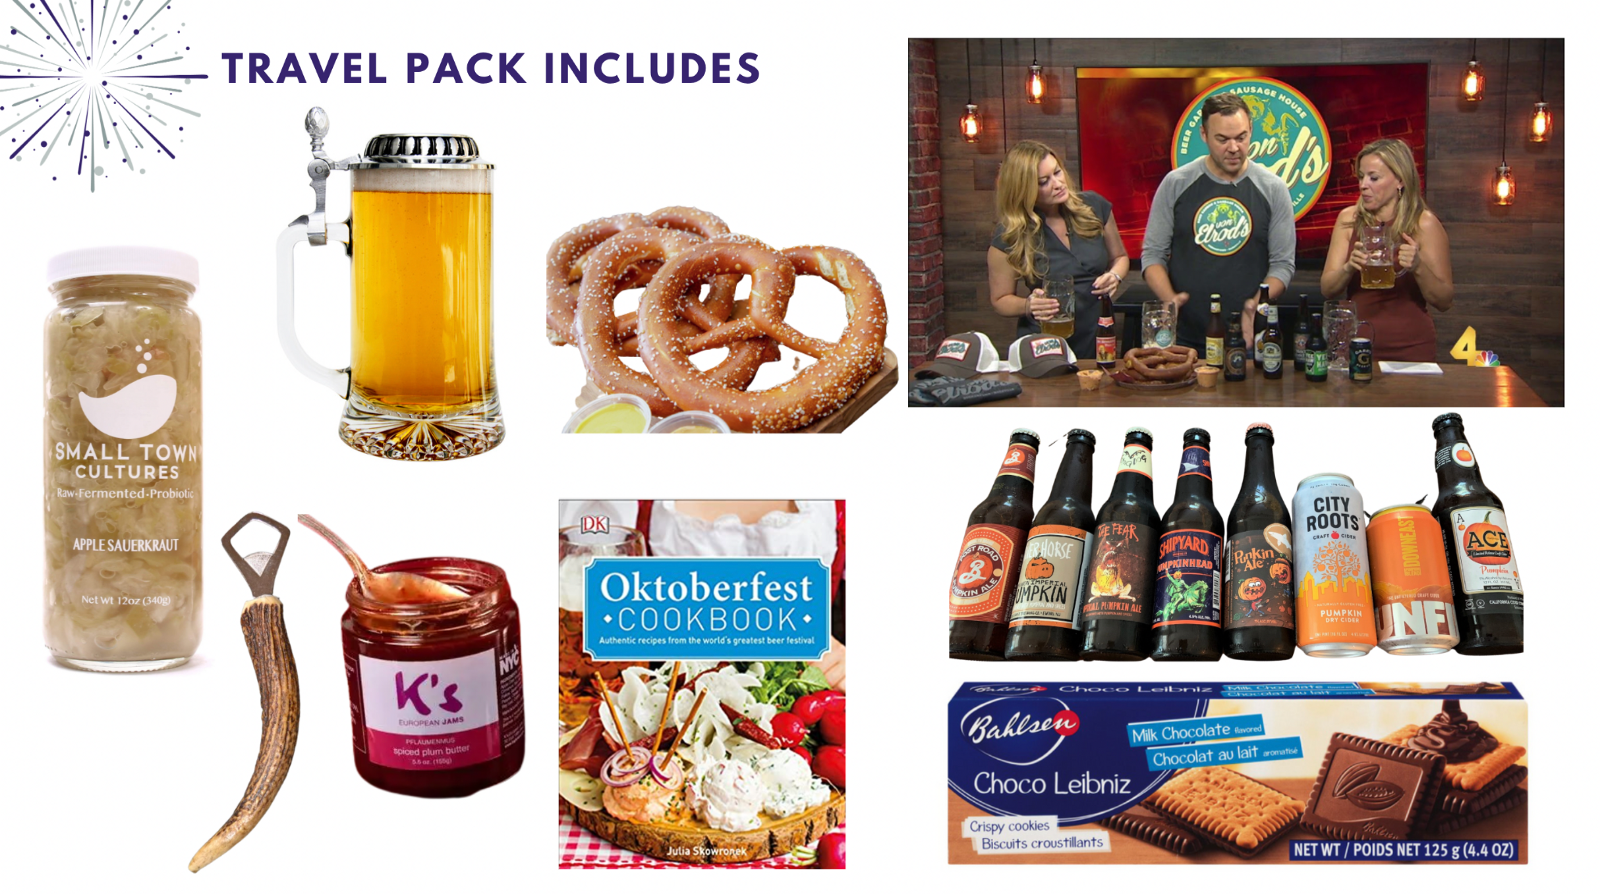 Oktoberfest party pack for fall team building event—Book with Eva and Spark by Designs